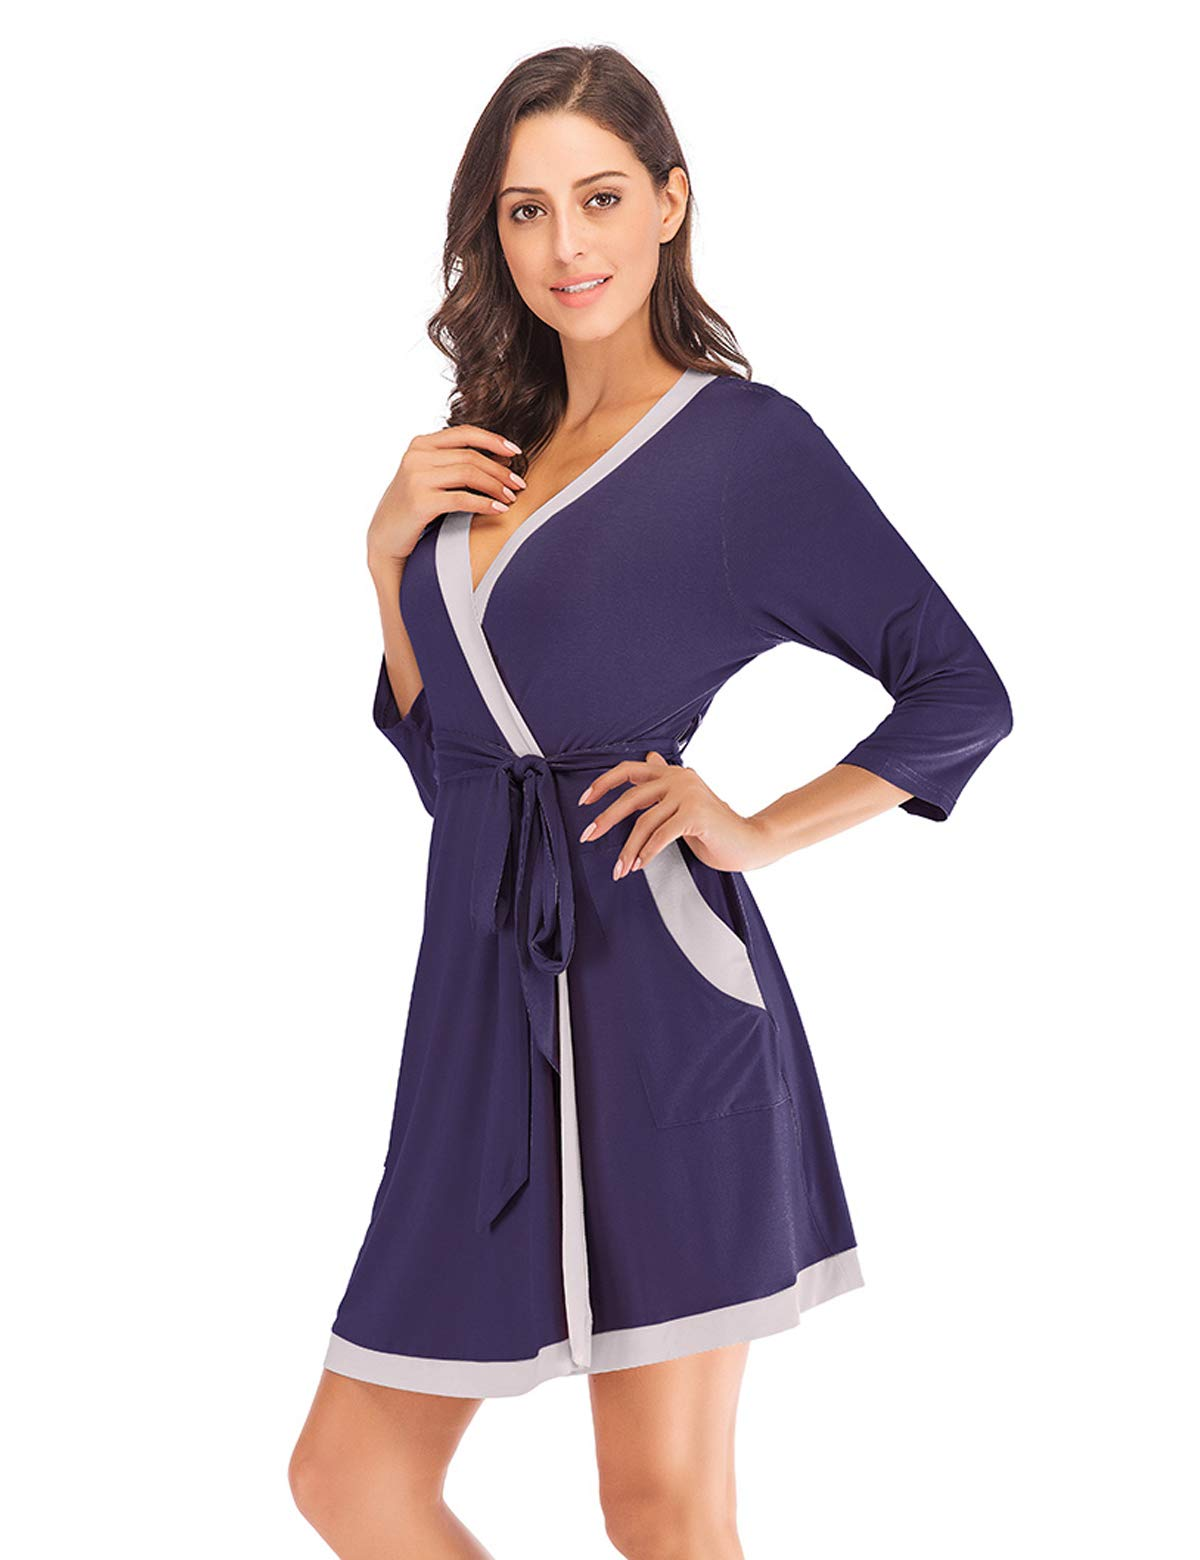 Navy Blue Short Cotton Bathrobe Sleepwear Nightgown Pajama for Women (NB_M)